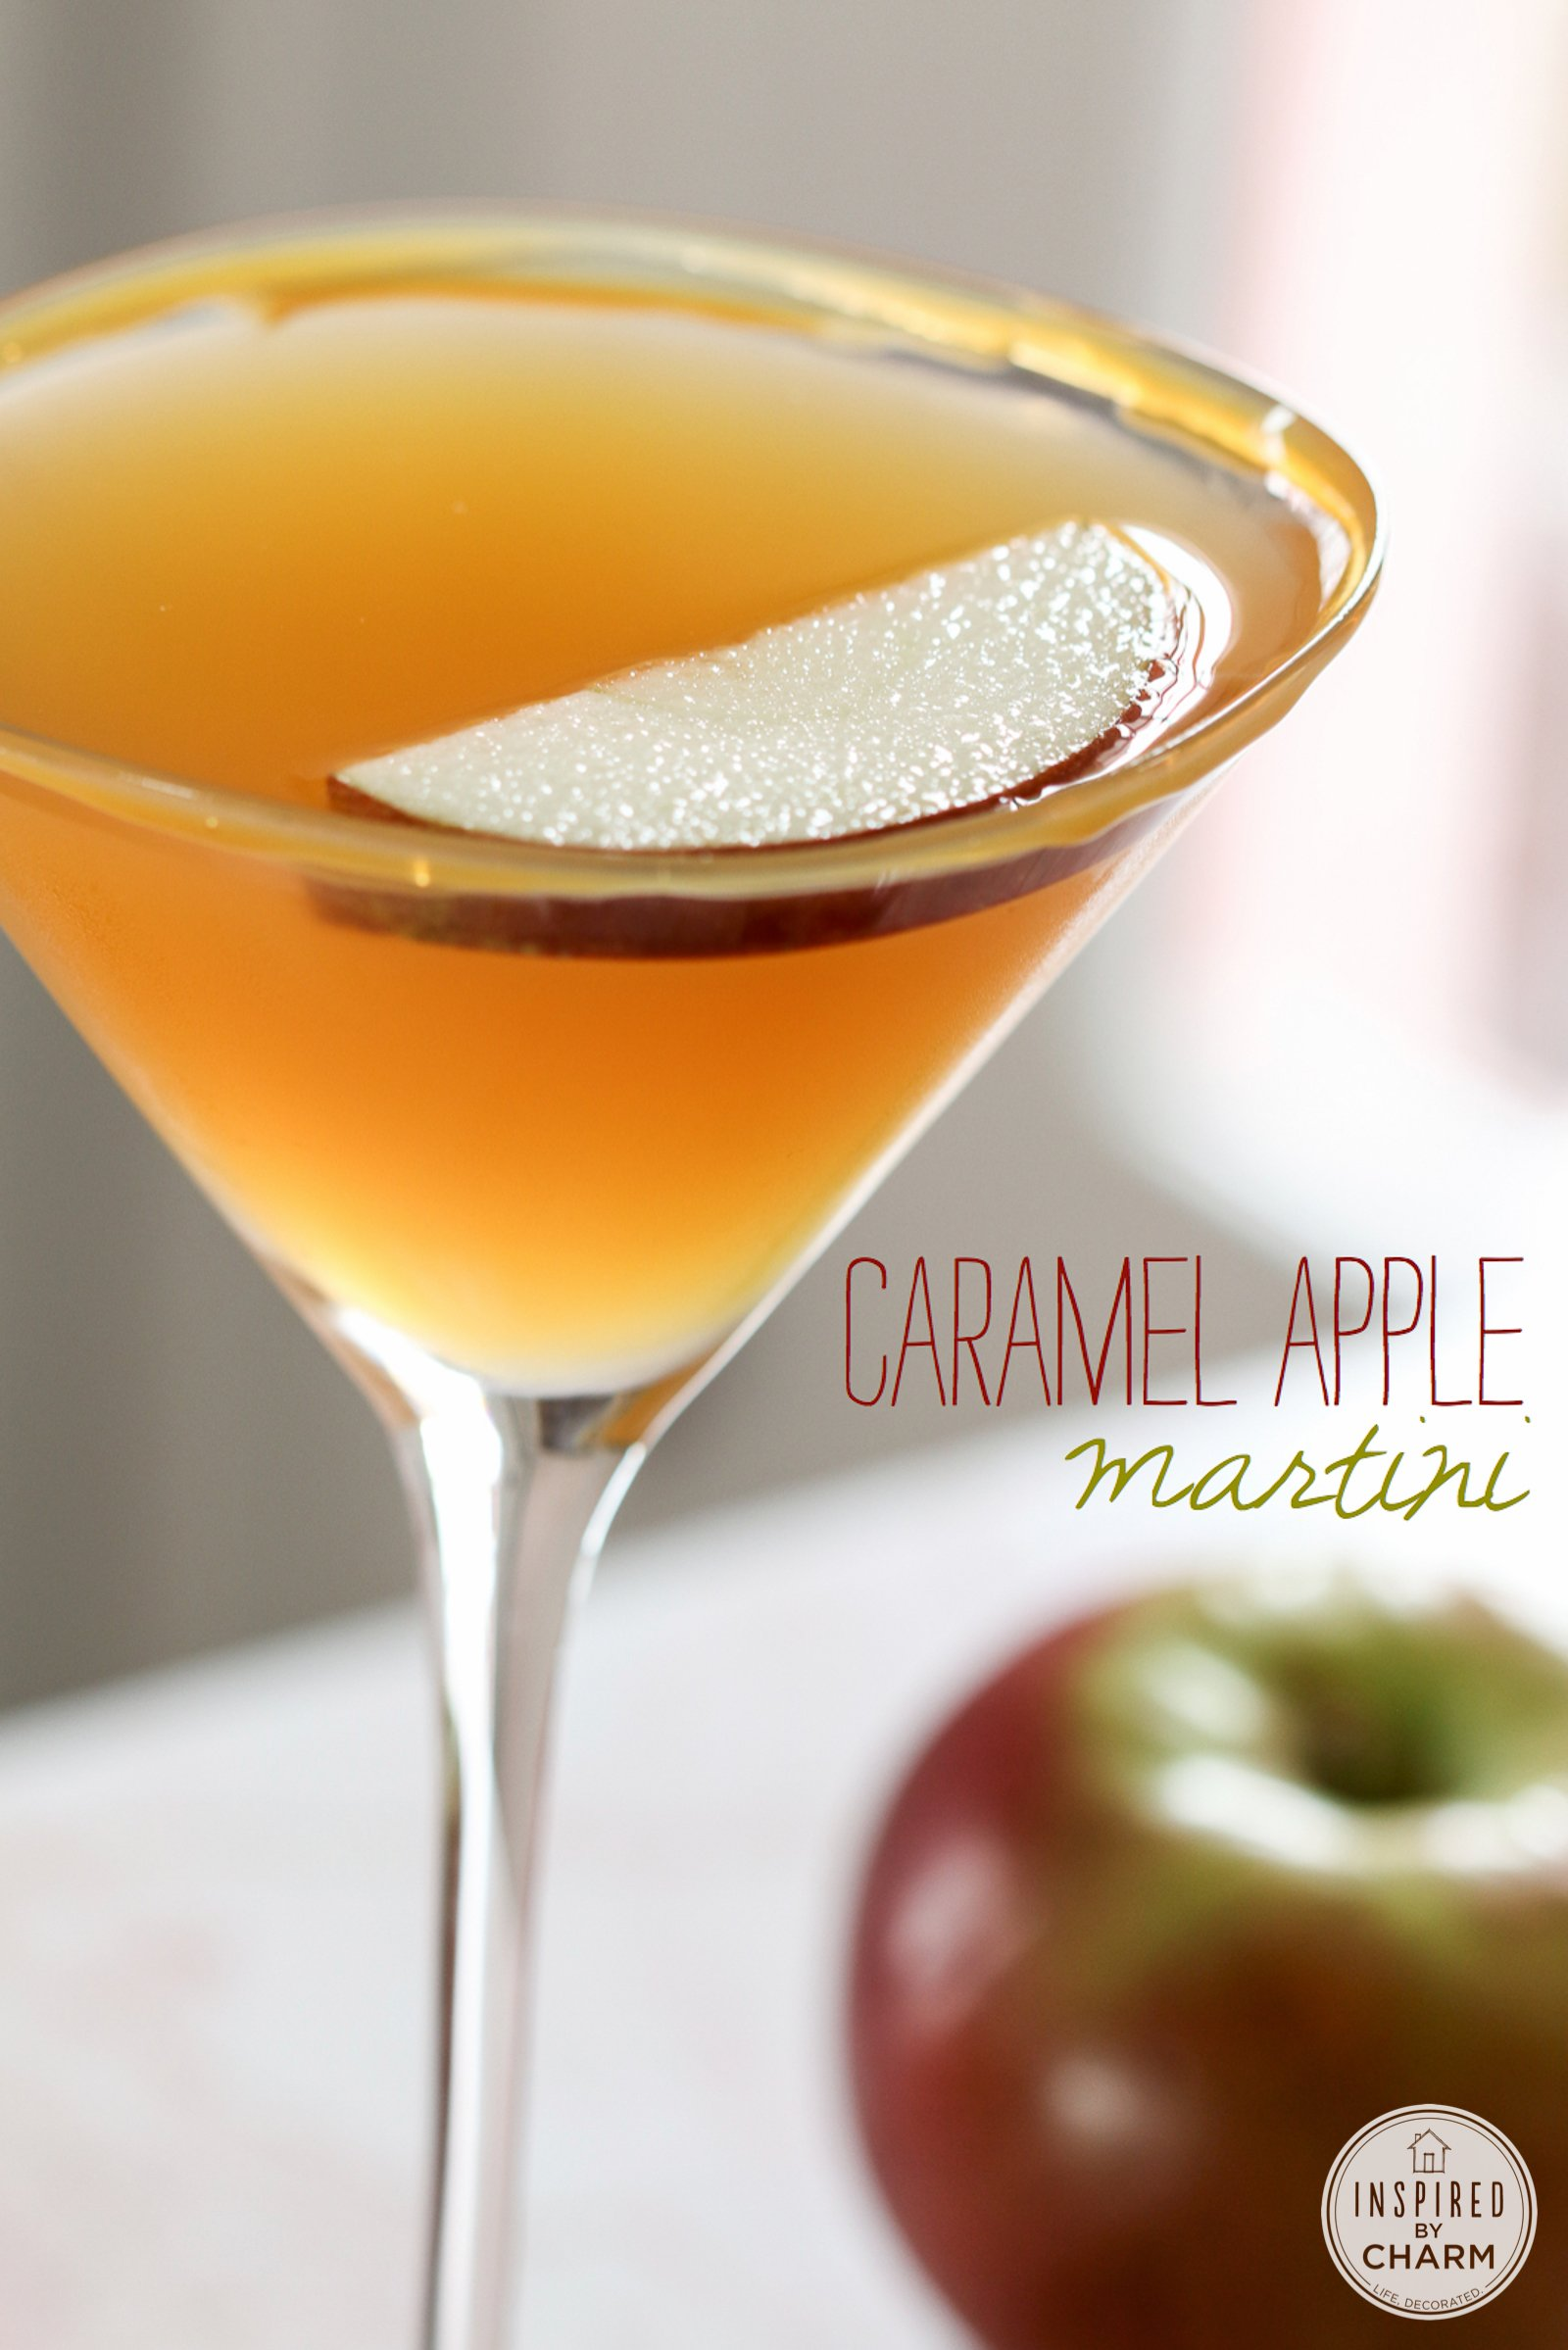 https://inspiredbycharm.com/wp-content/uploads/2014/08/caramel_apple_martini.jpg